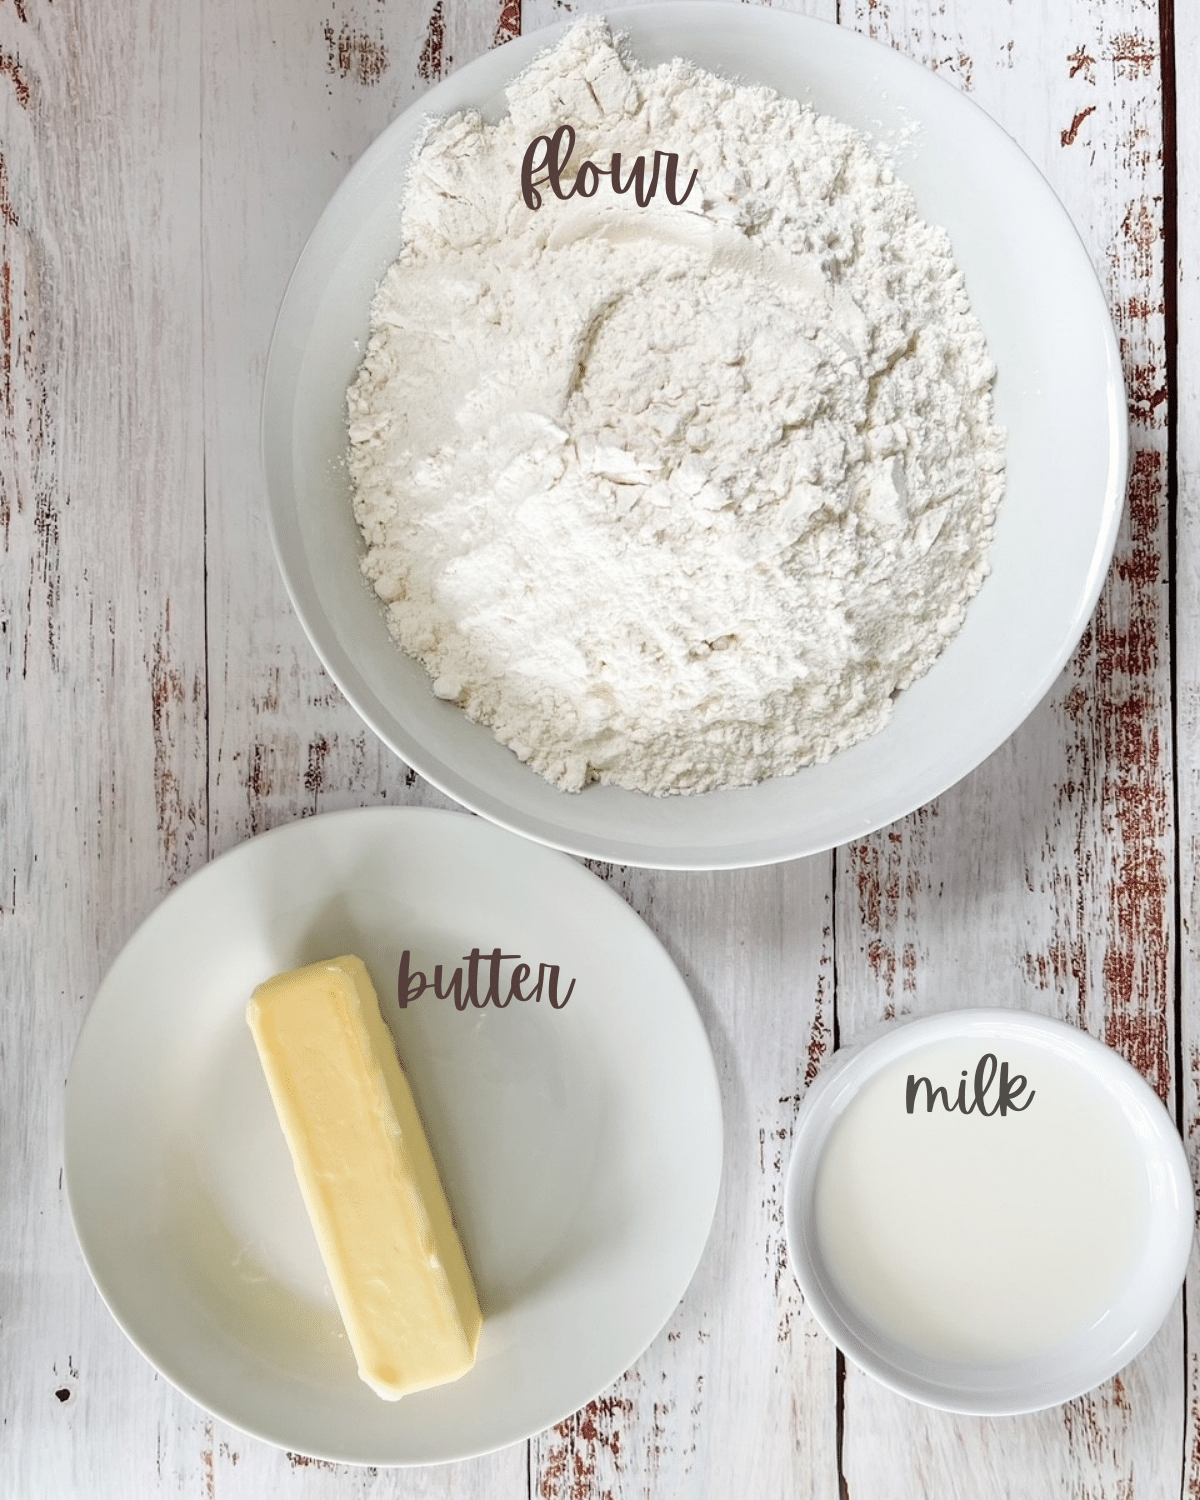 Ingredients for 3 ingredient flatbread measured out and put in bowls, flour, butter, and milk